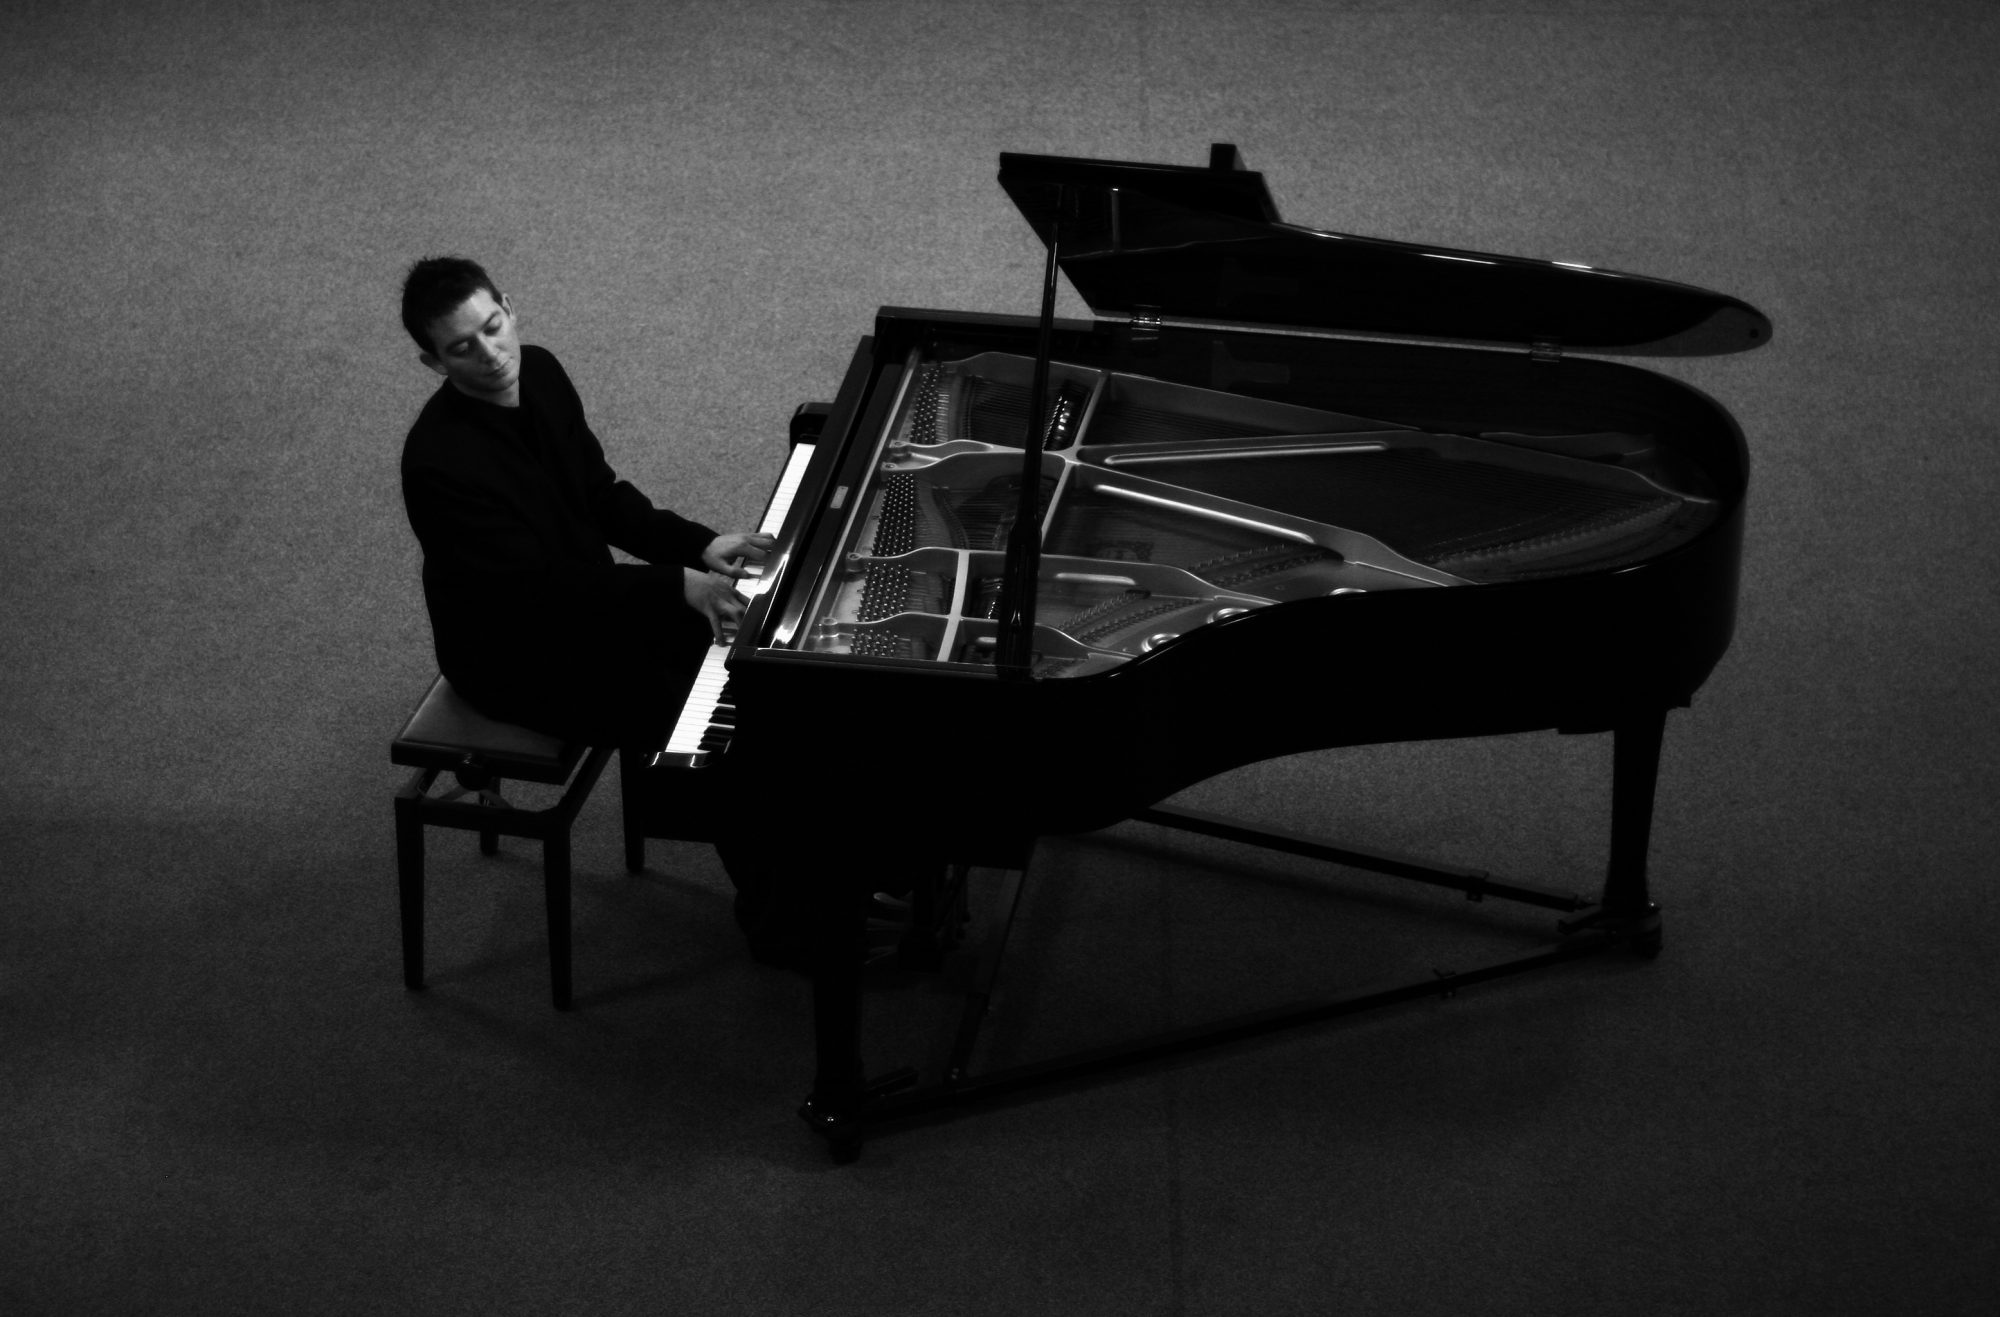 Image result for man infront of piano bw